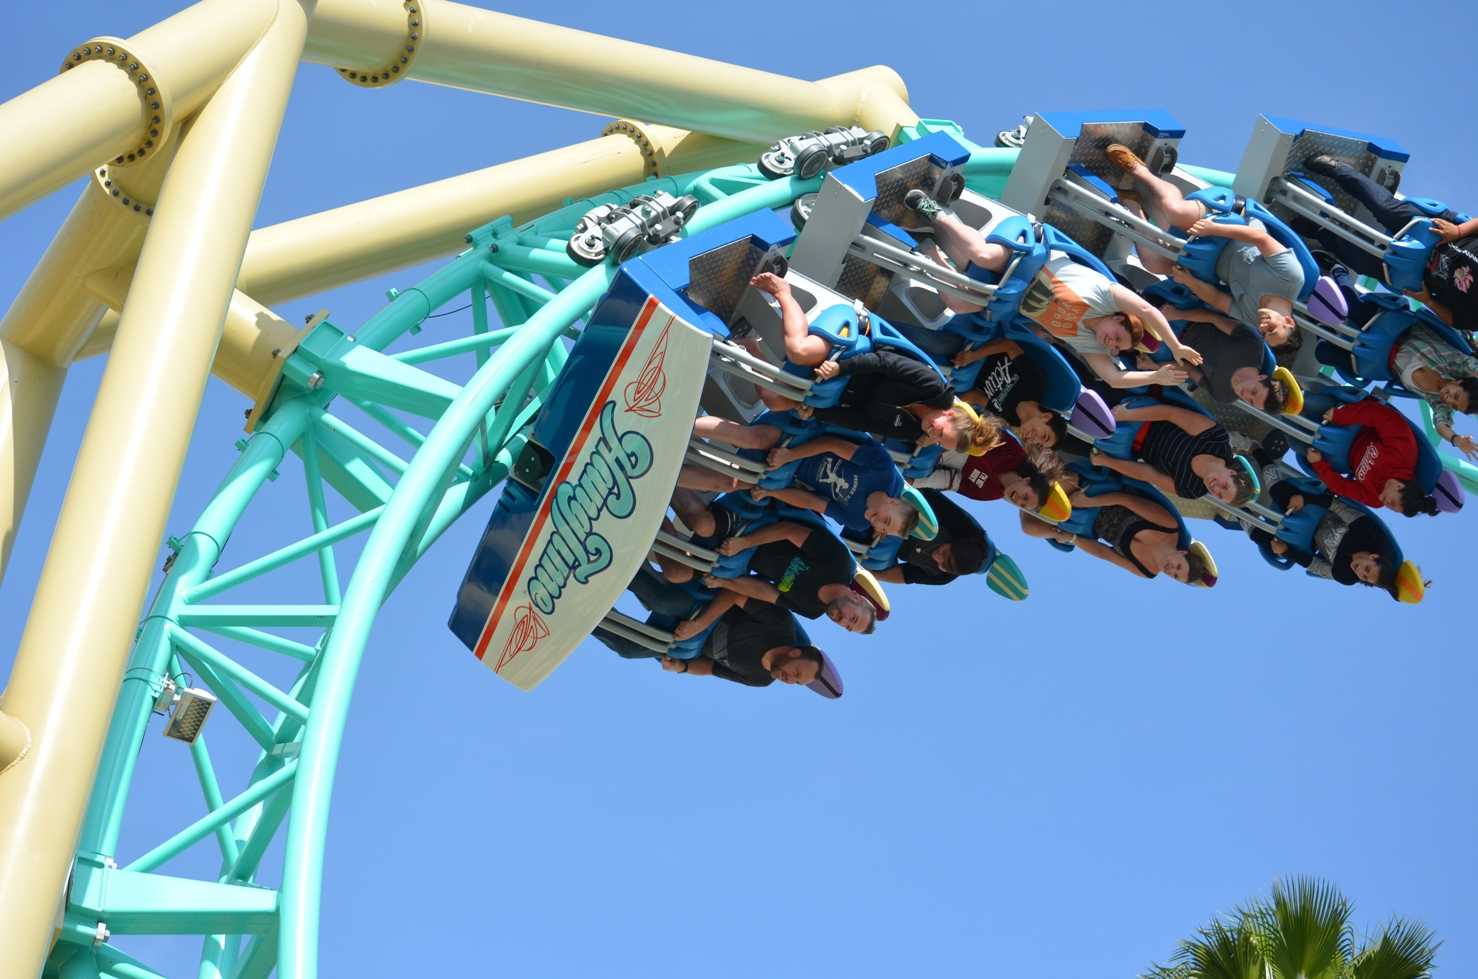 Hangtime, Ride Entertainment celebrates coaster debut Knotts Berry Farm